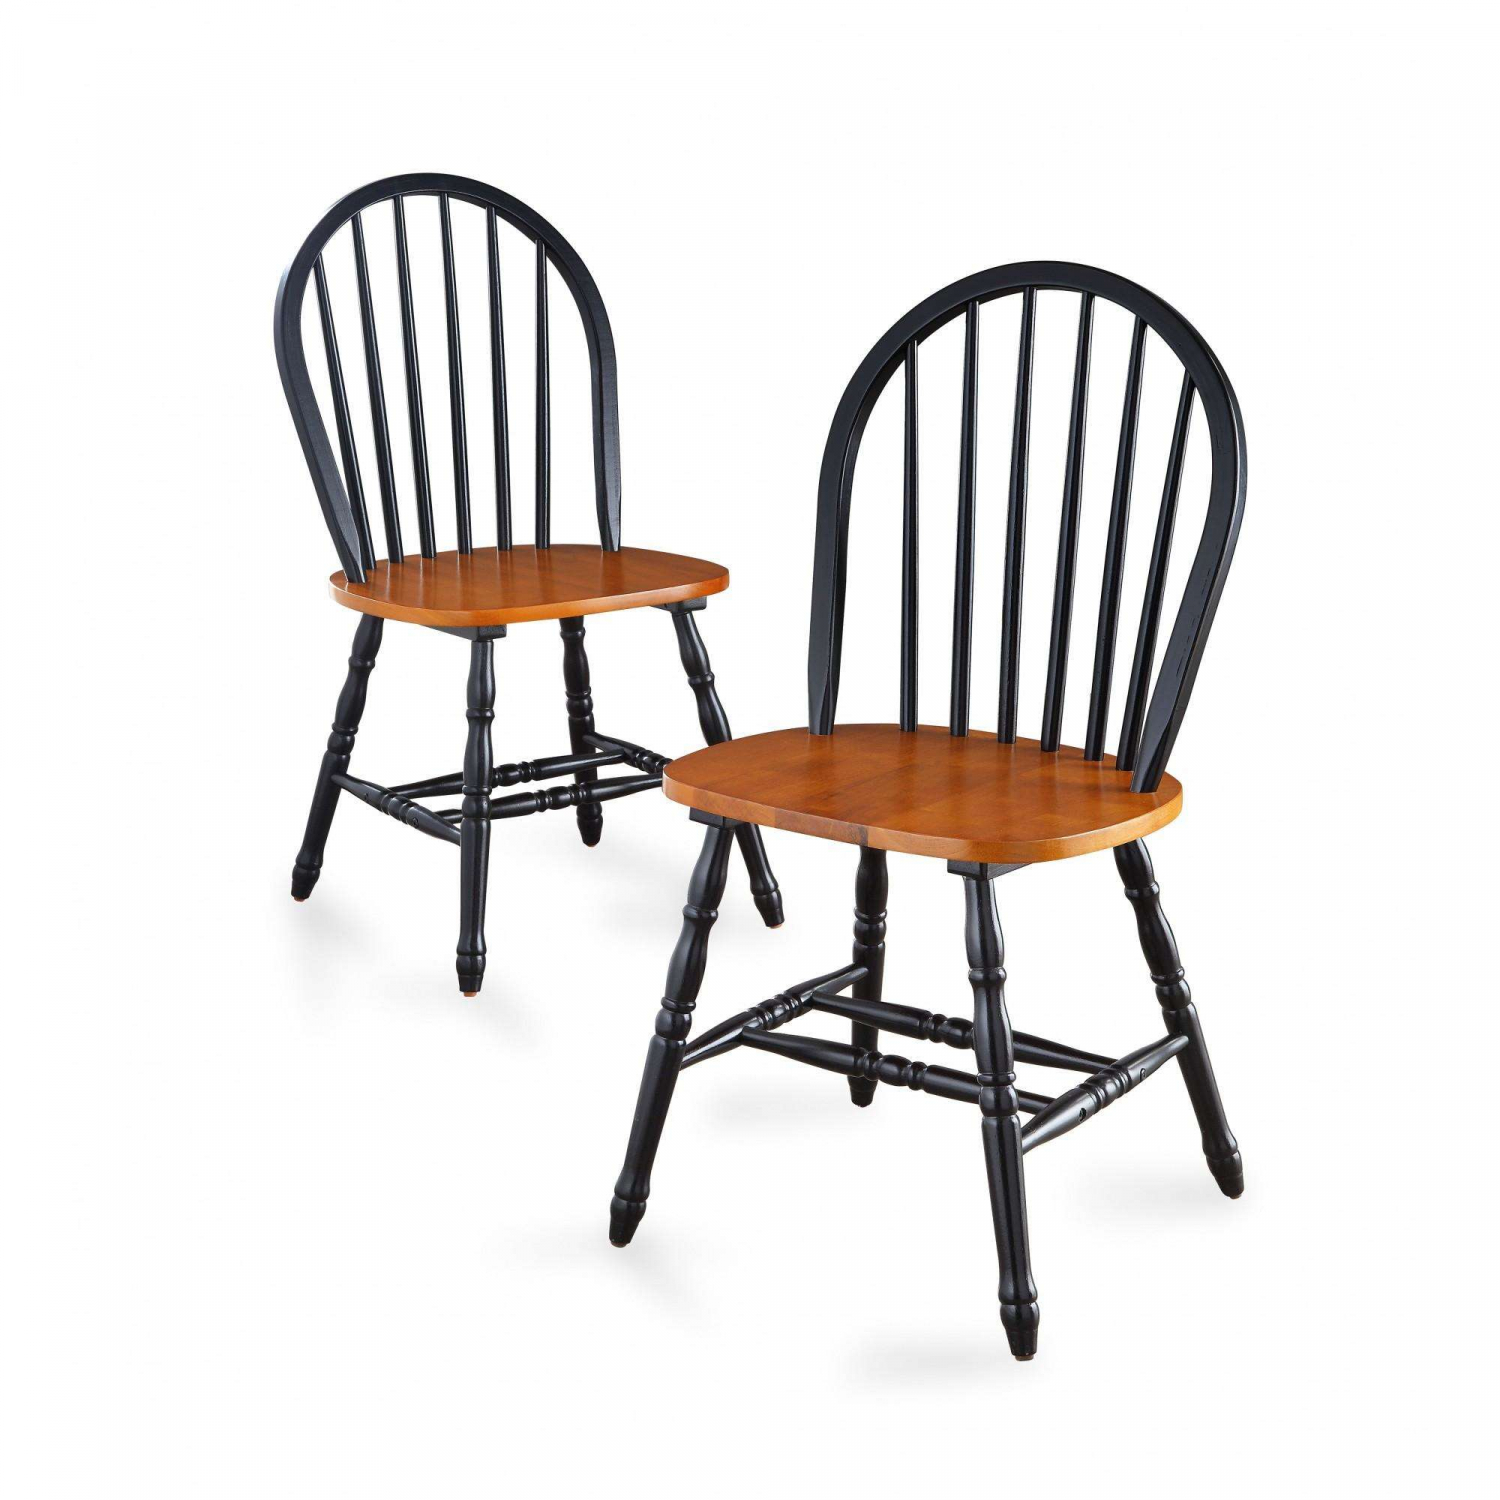 Wooden Dining Chairs Set Of 4 Table Seating Wood Kitchen Family Room Meals Black For Sale Online Ebay